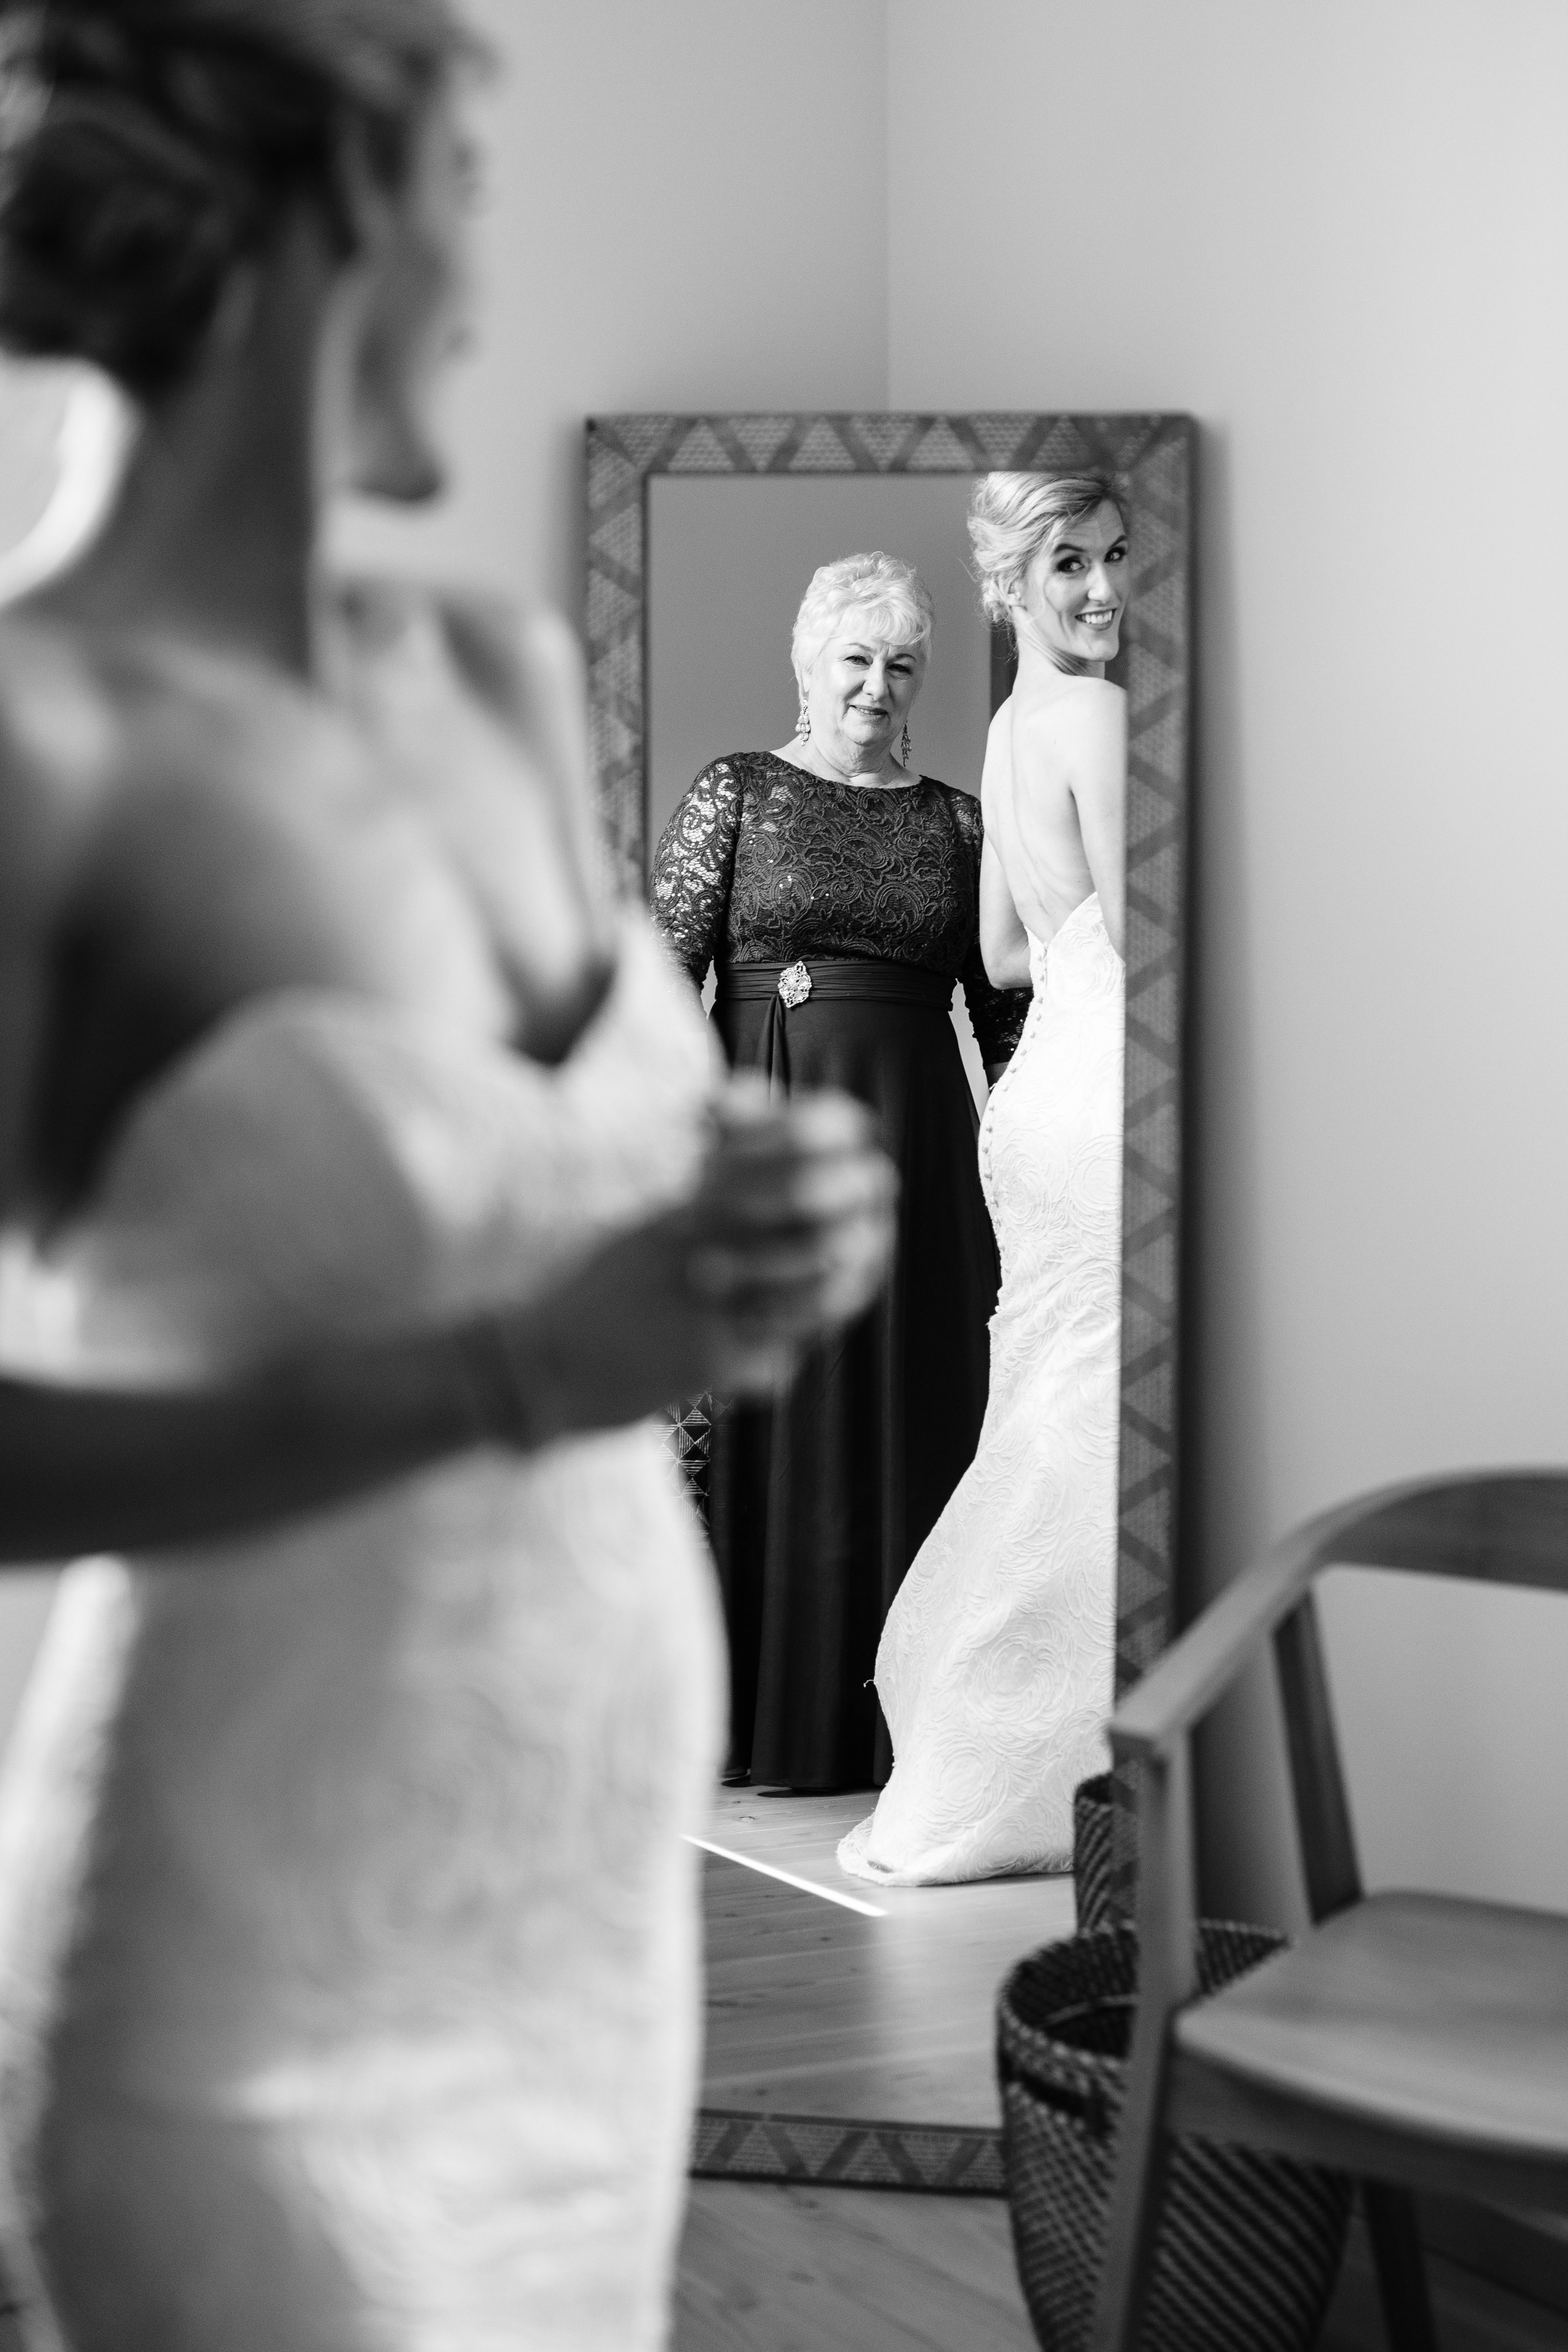 Bride and mom admiring wedding gown in mirror - photo by Cameron Zegers Photography